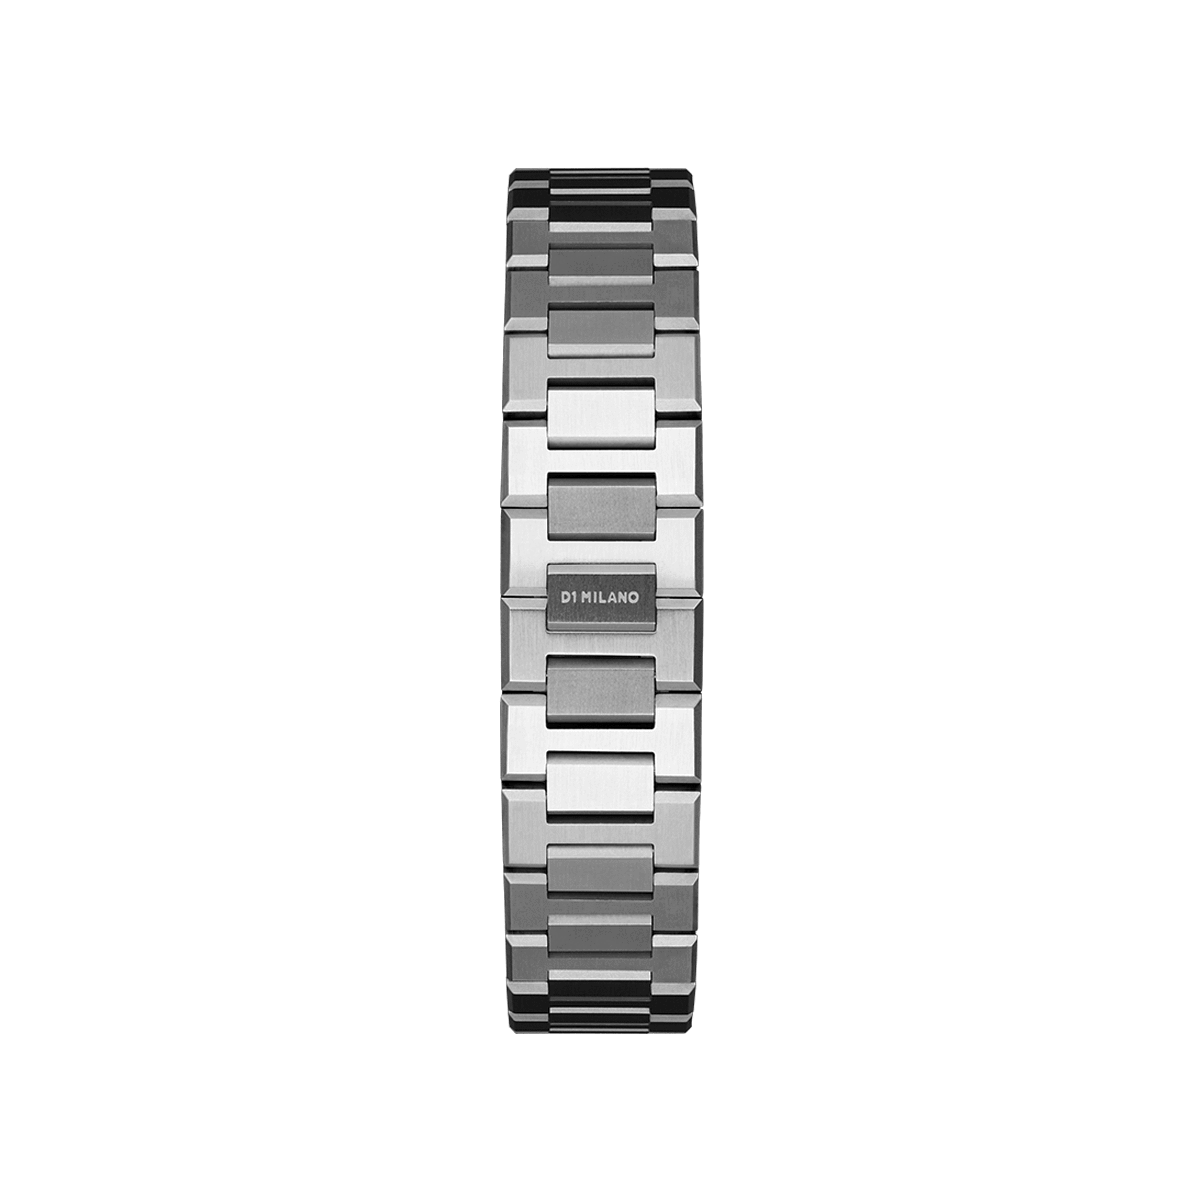 STR - D1 Milano UT40BR01 Silver Band